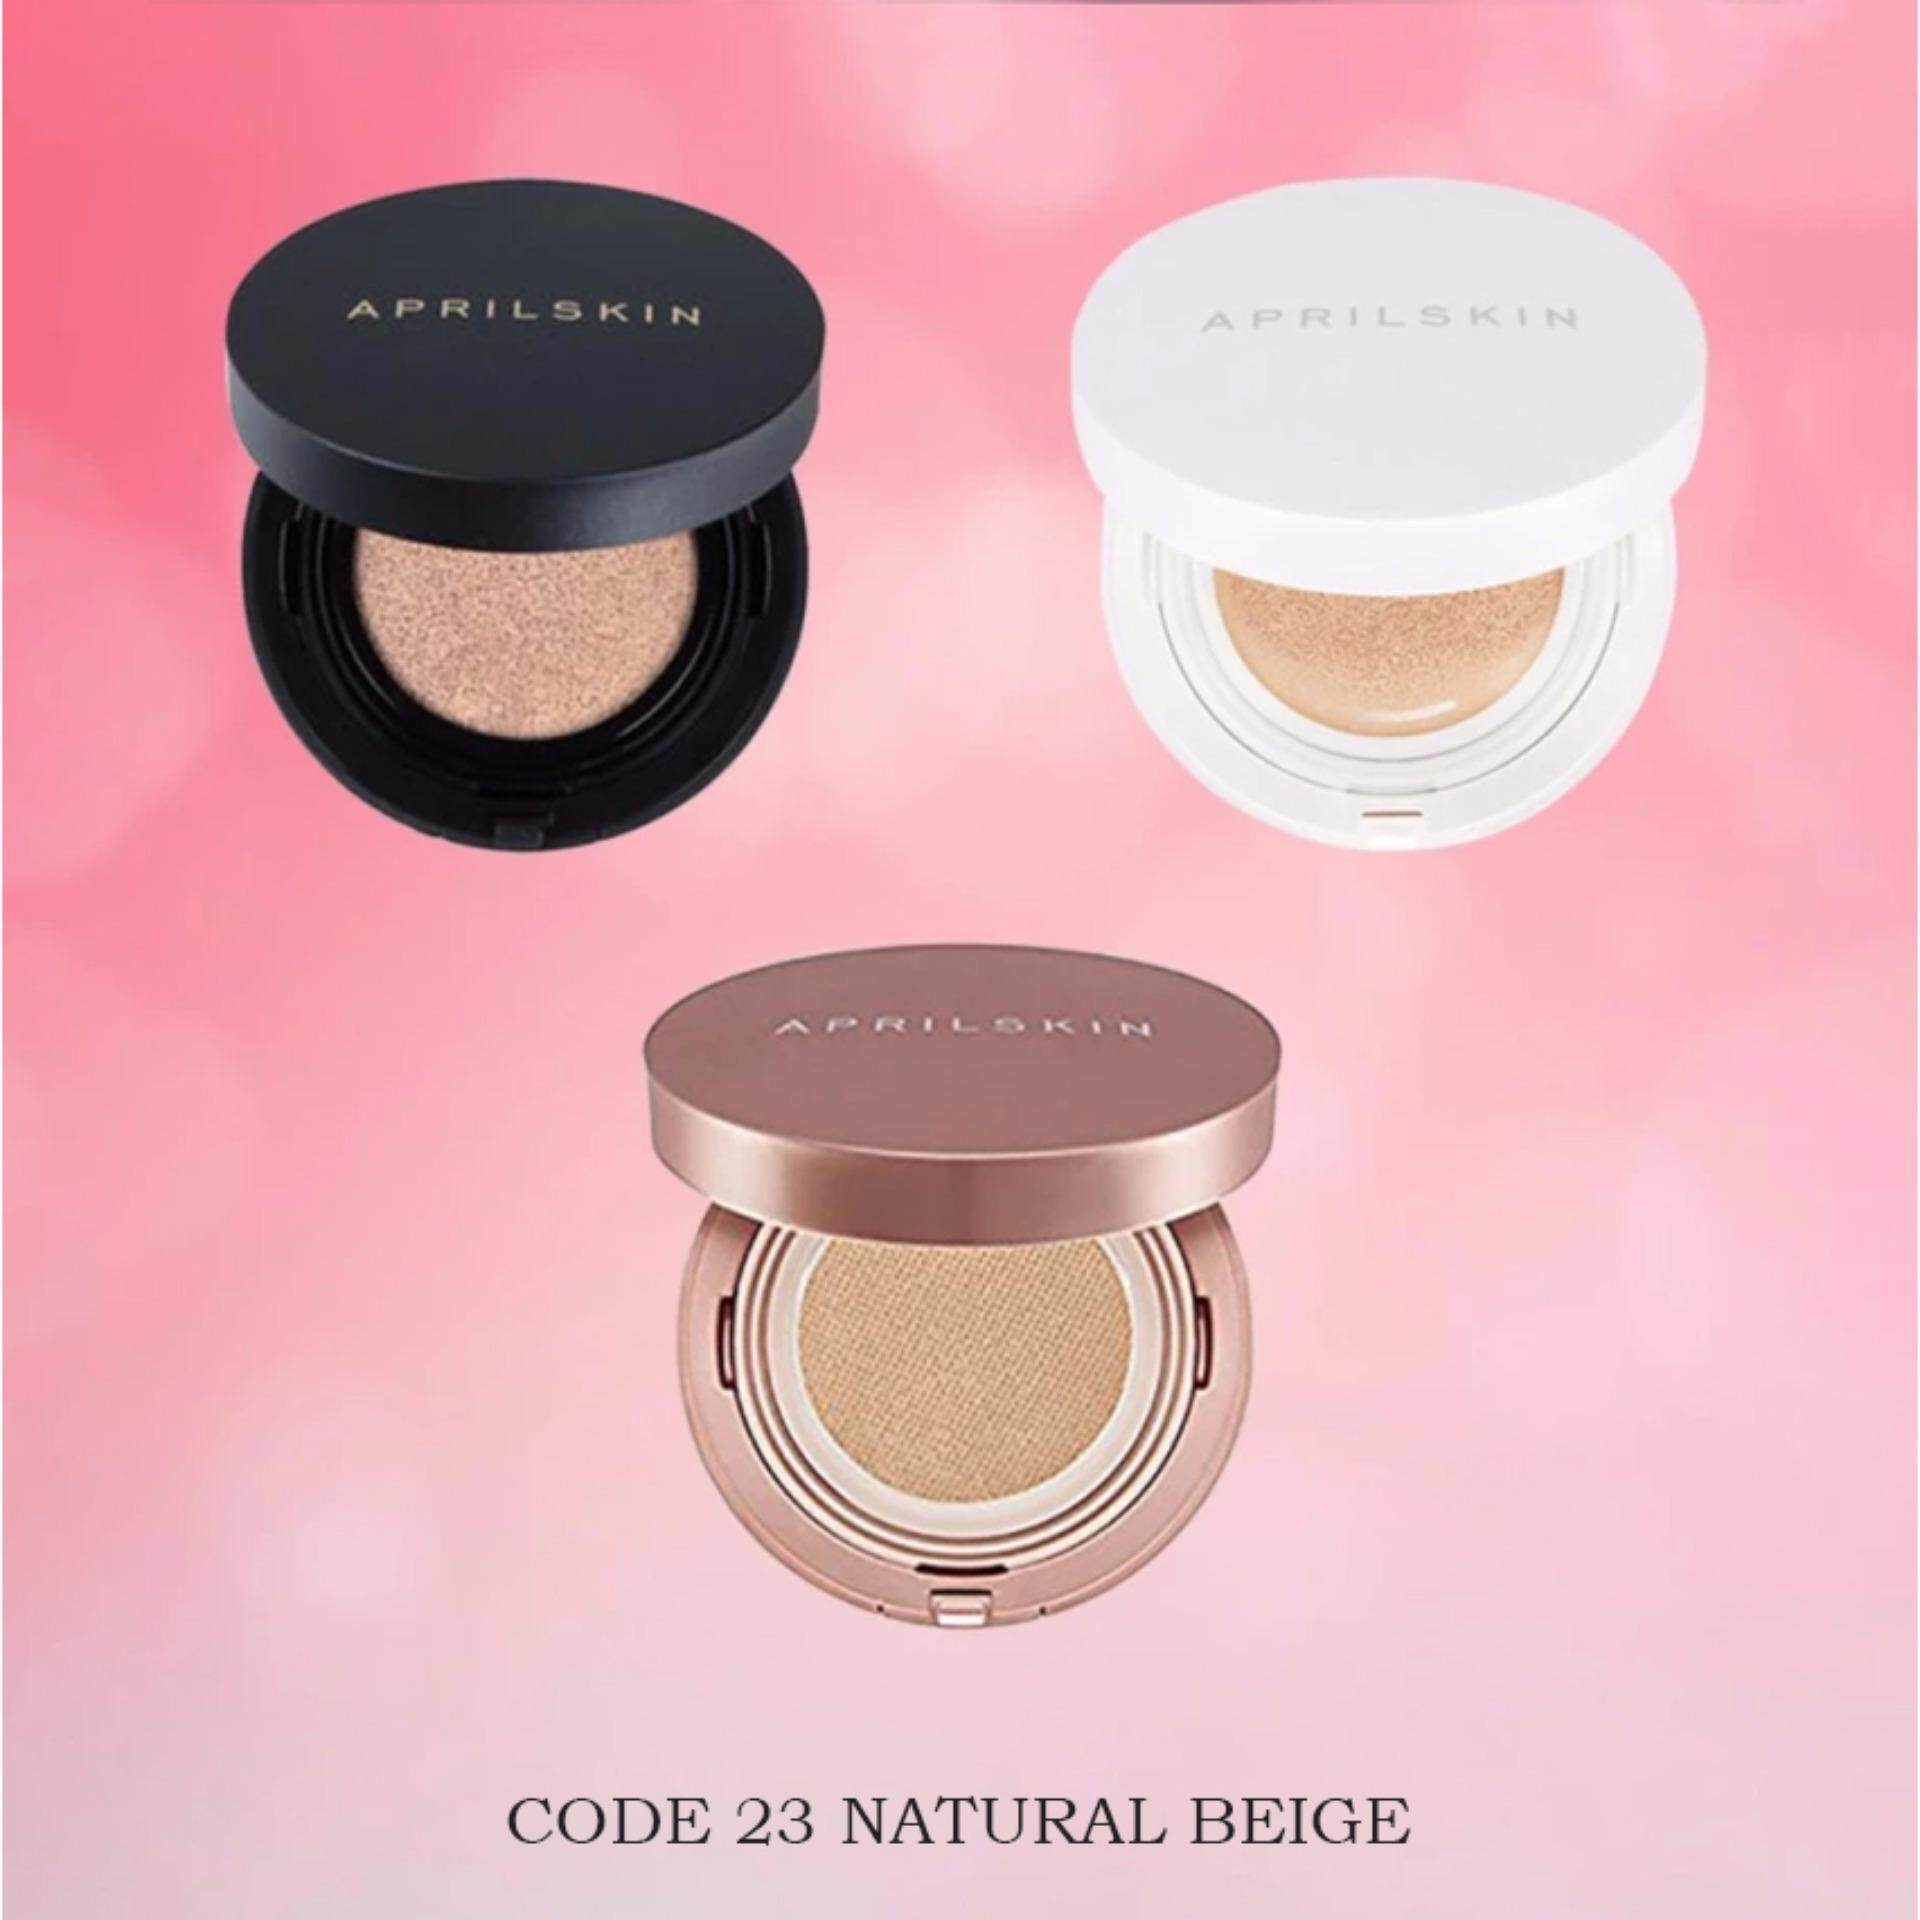 2 SET [April Skin] Magic Snow Cushion BLACK (LIGHT BEIGE) & WHITE (PINK BEIGE) foundation